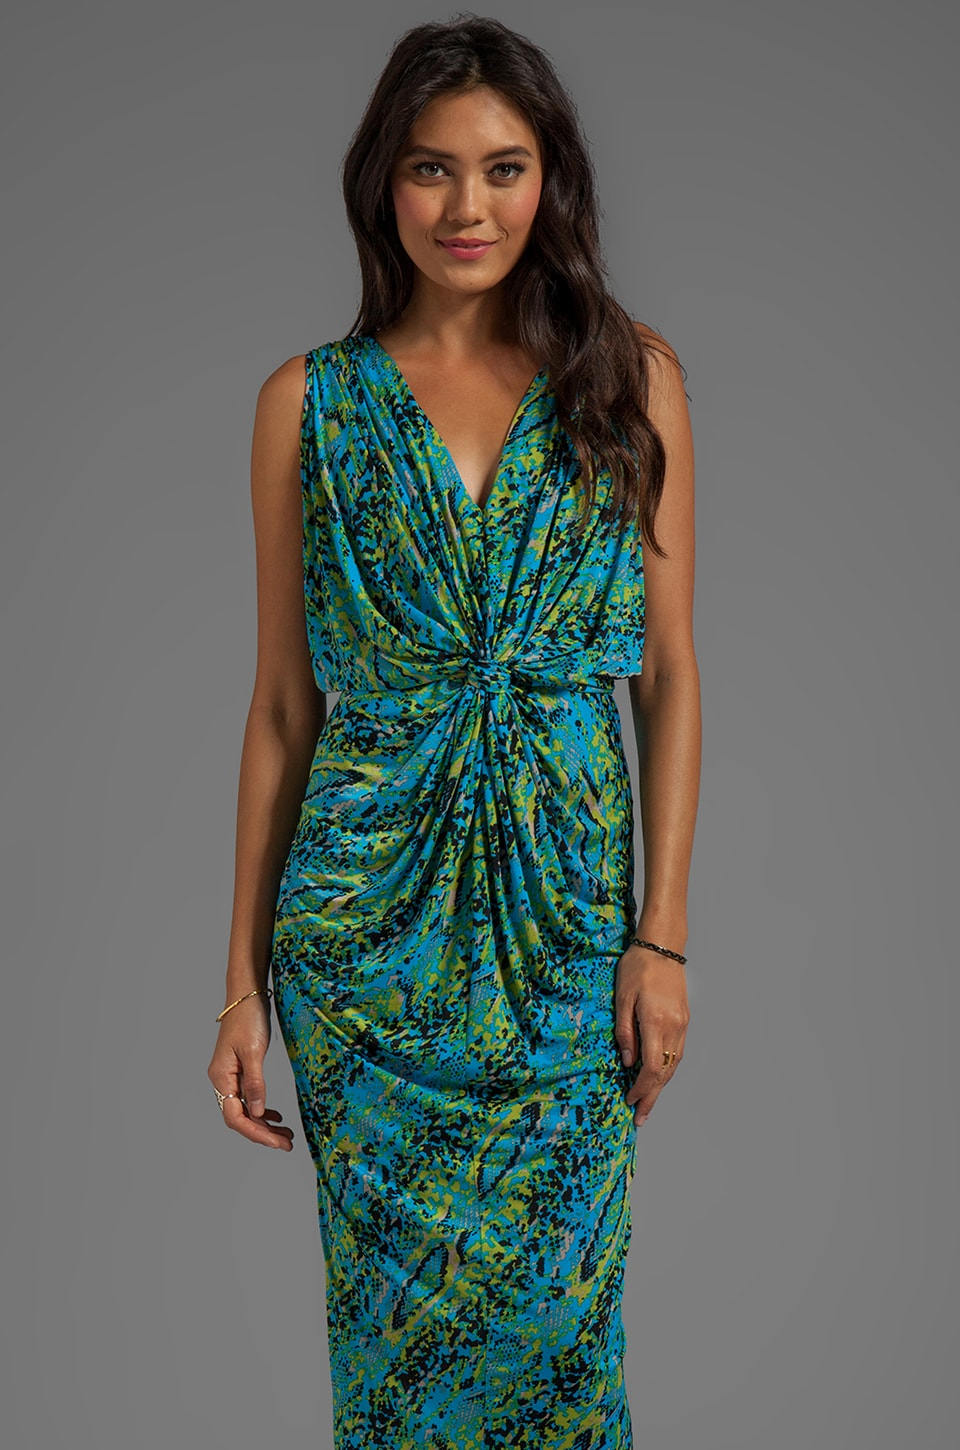 T-Bags LosAngeles Drape Sleeve Maxi Dress in Aqua Snake